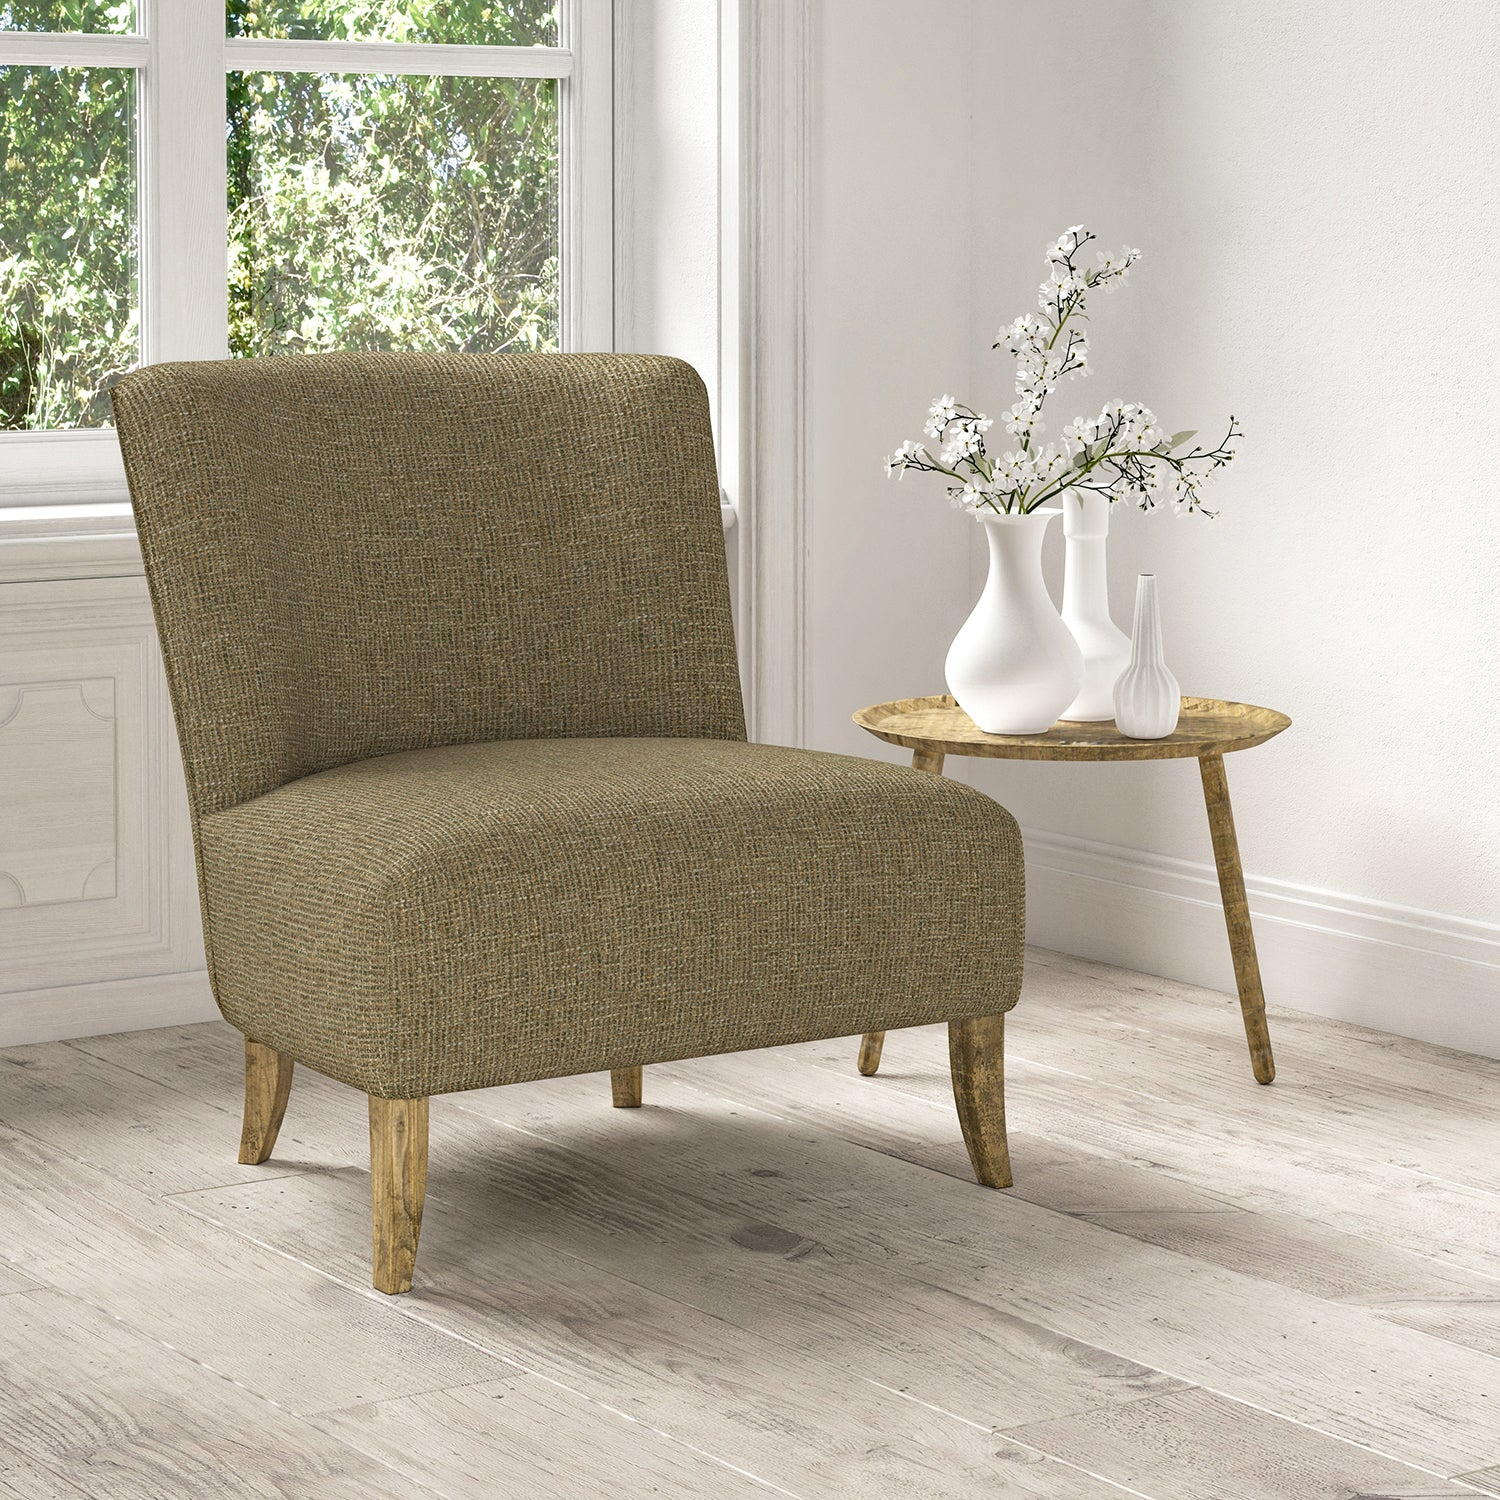 Chair upholstered in a stain resistant neutral fabric with a tweed design